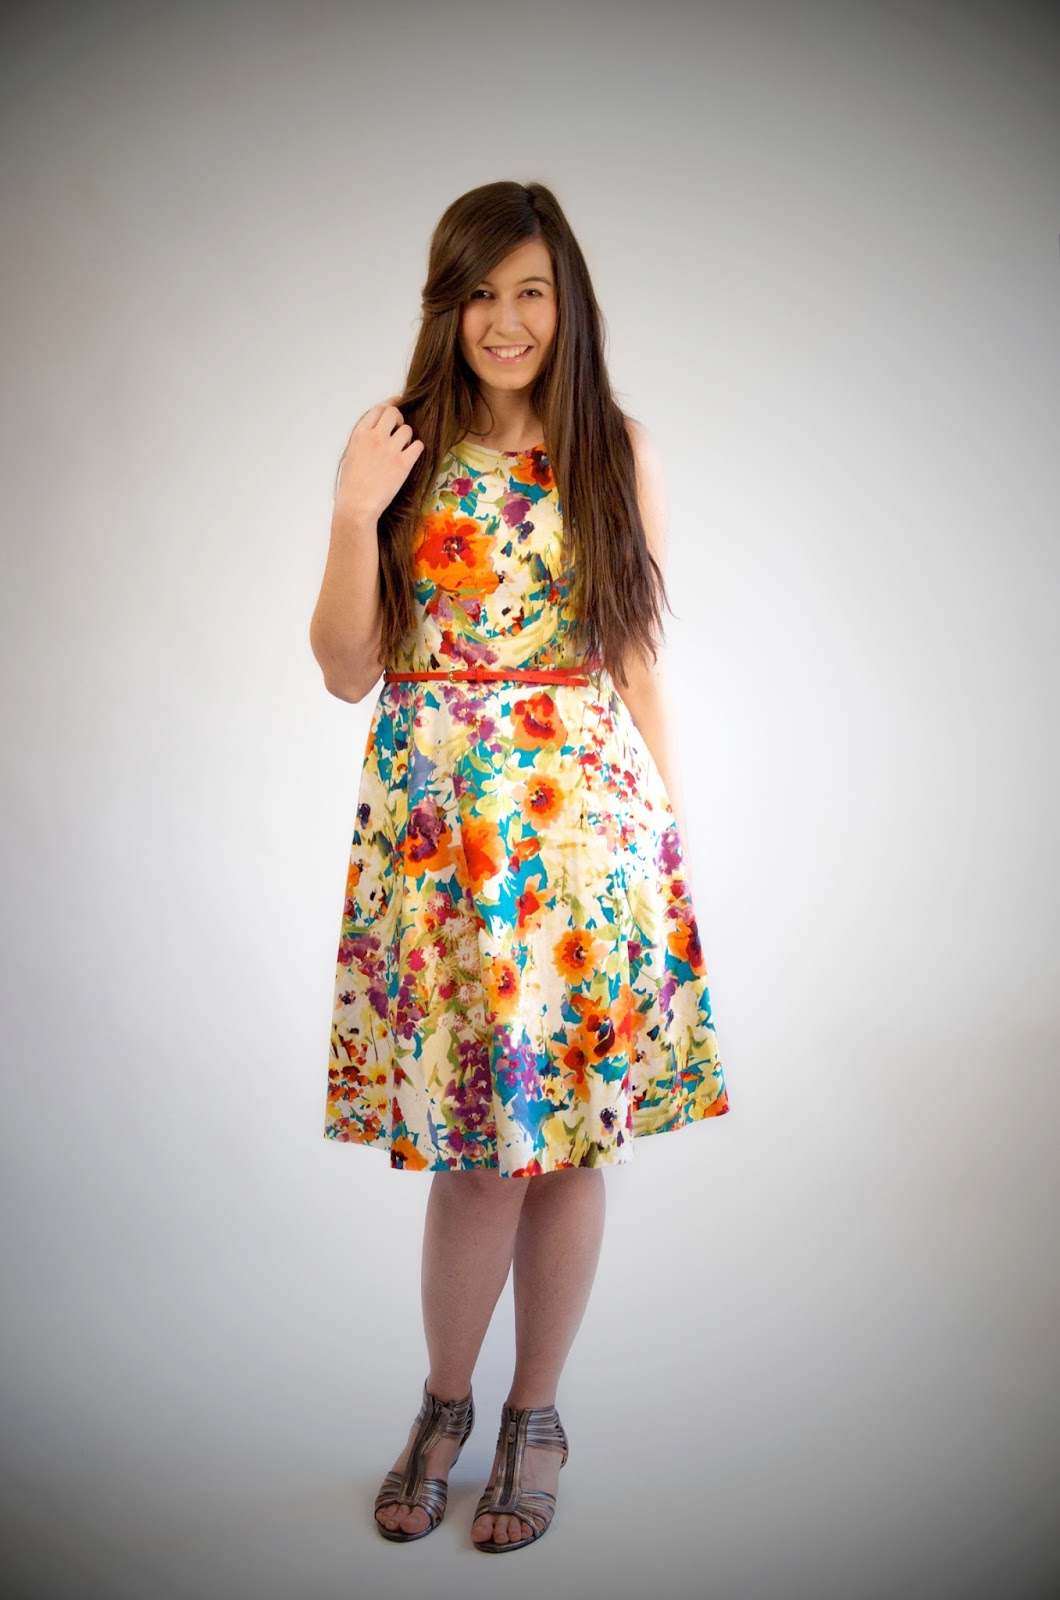 jcp, jcpenney, jcpenney dresses, jcp dress, jcpenney dresses, floral dress, floral outfit, chihuahua, puppies, cute dog, long hair, extensions, bellami hair extensions, summer time outfit, pretty, cute, love, summer love,